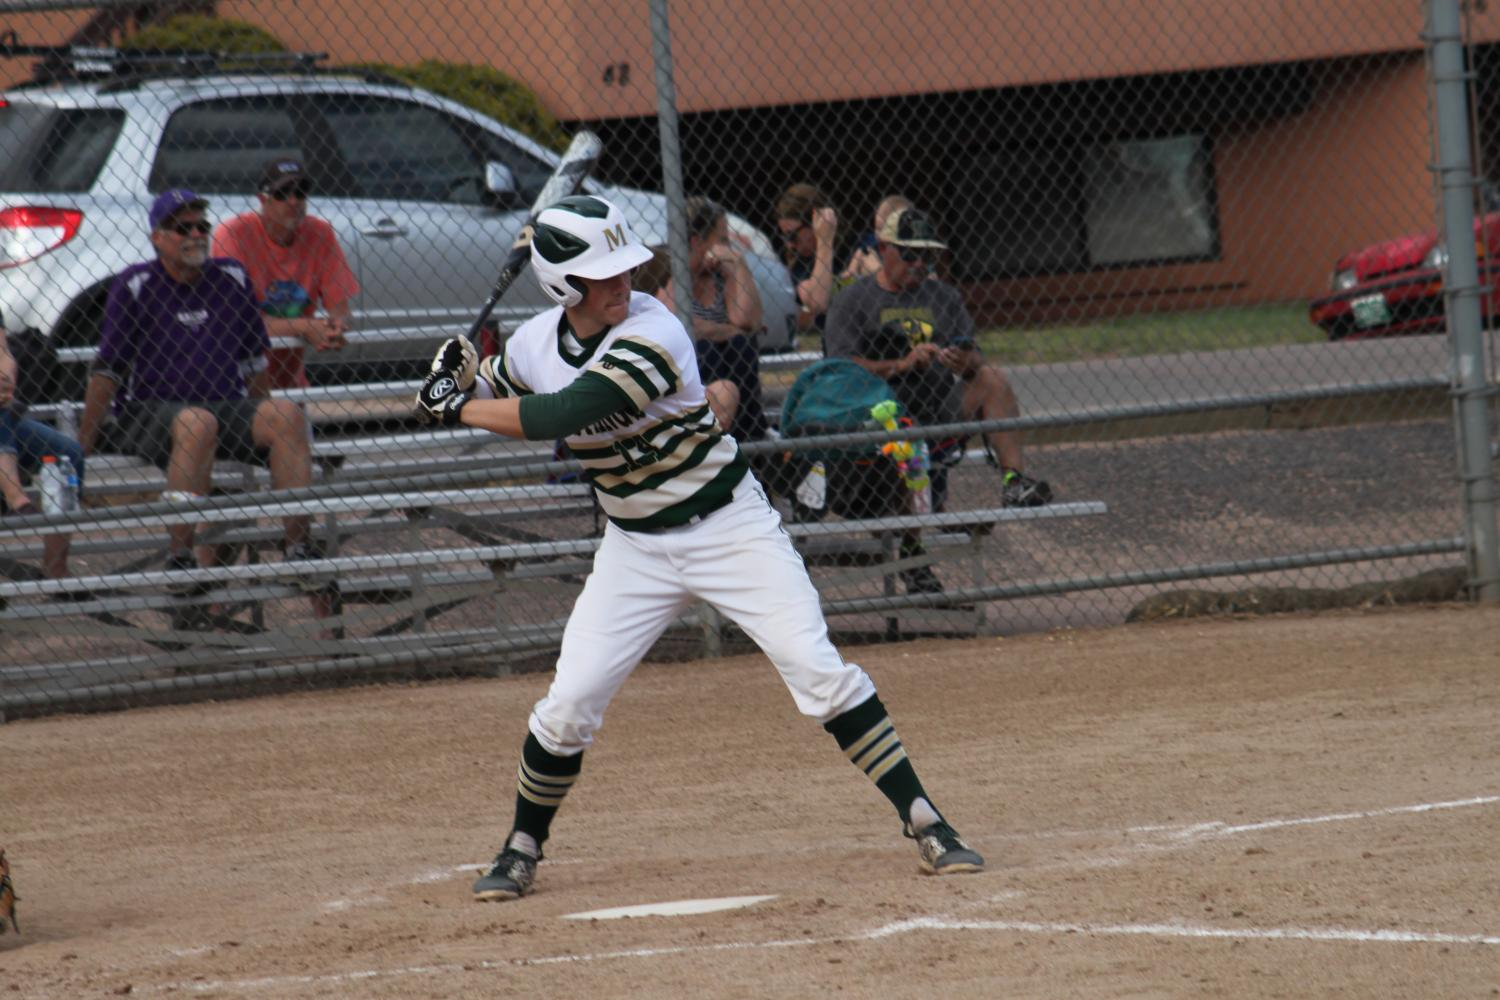 Lucas+Culver+%2812%29+goes+up+to+bat+in+an+early-season+game+against+Salida+High+School.